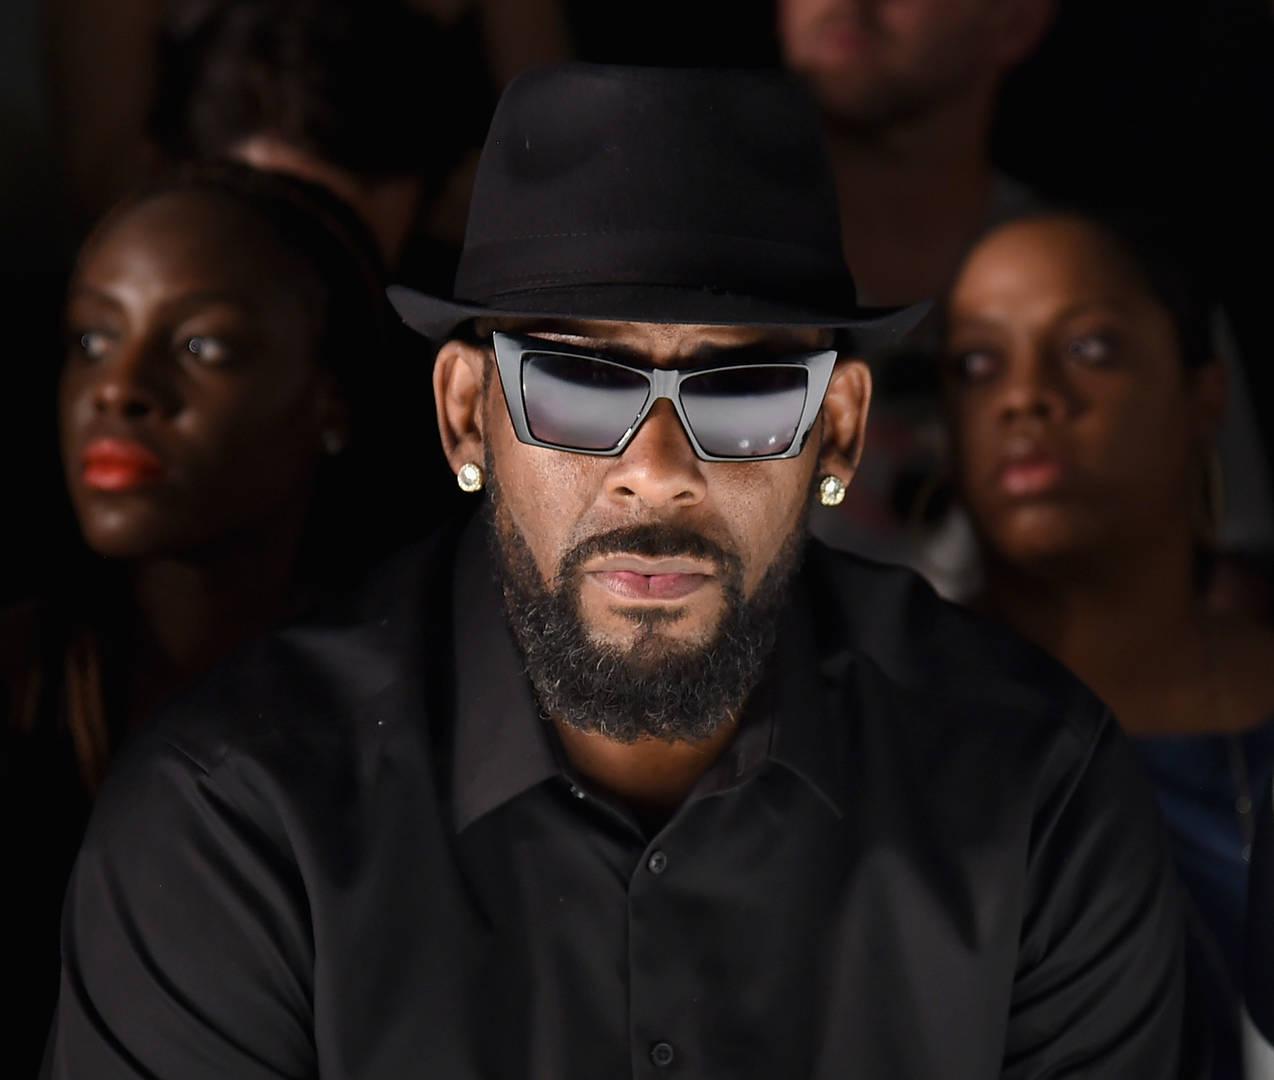 R Kelly charged with multiple counts of sexual abuse